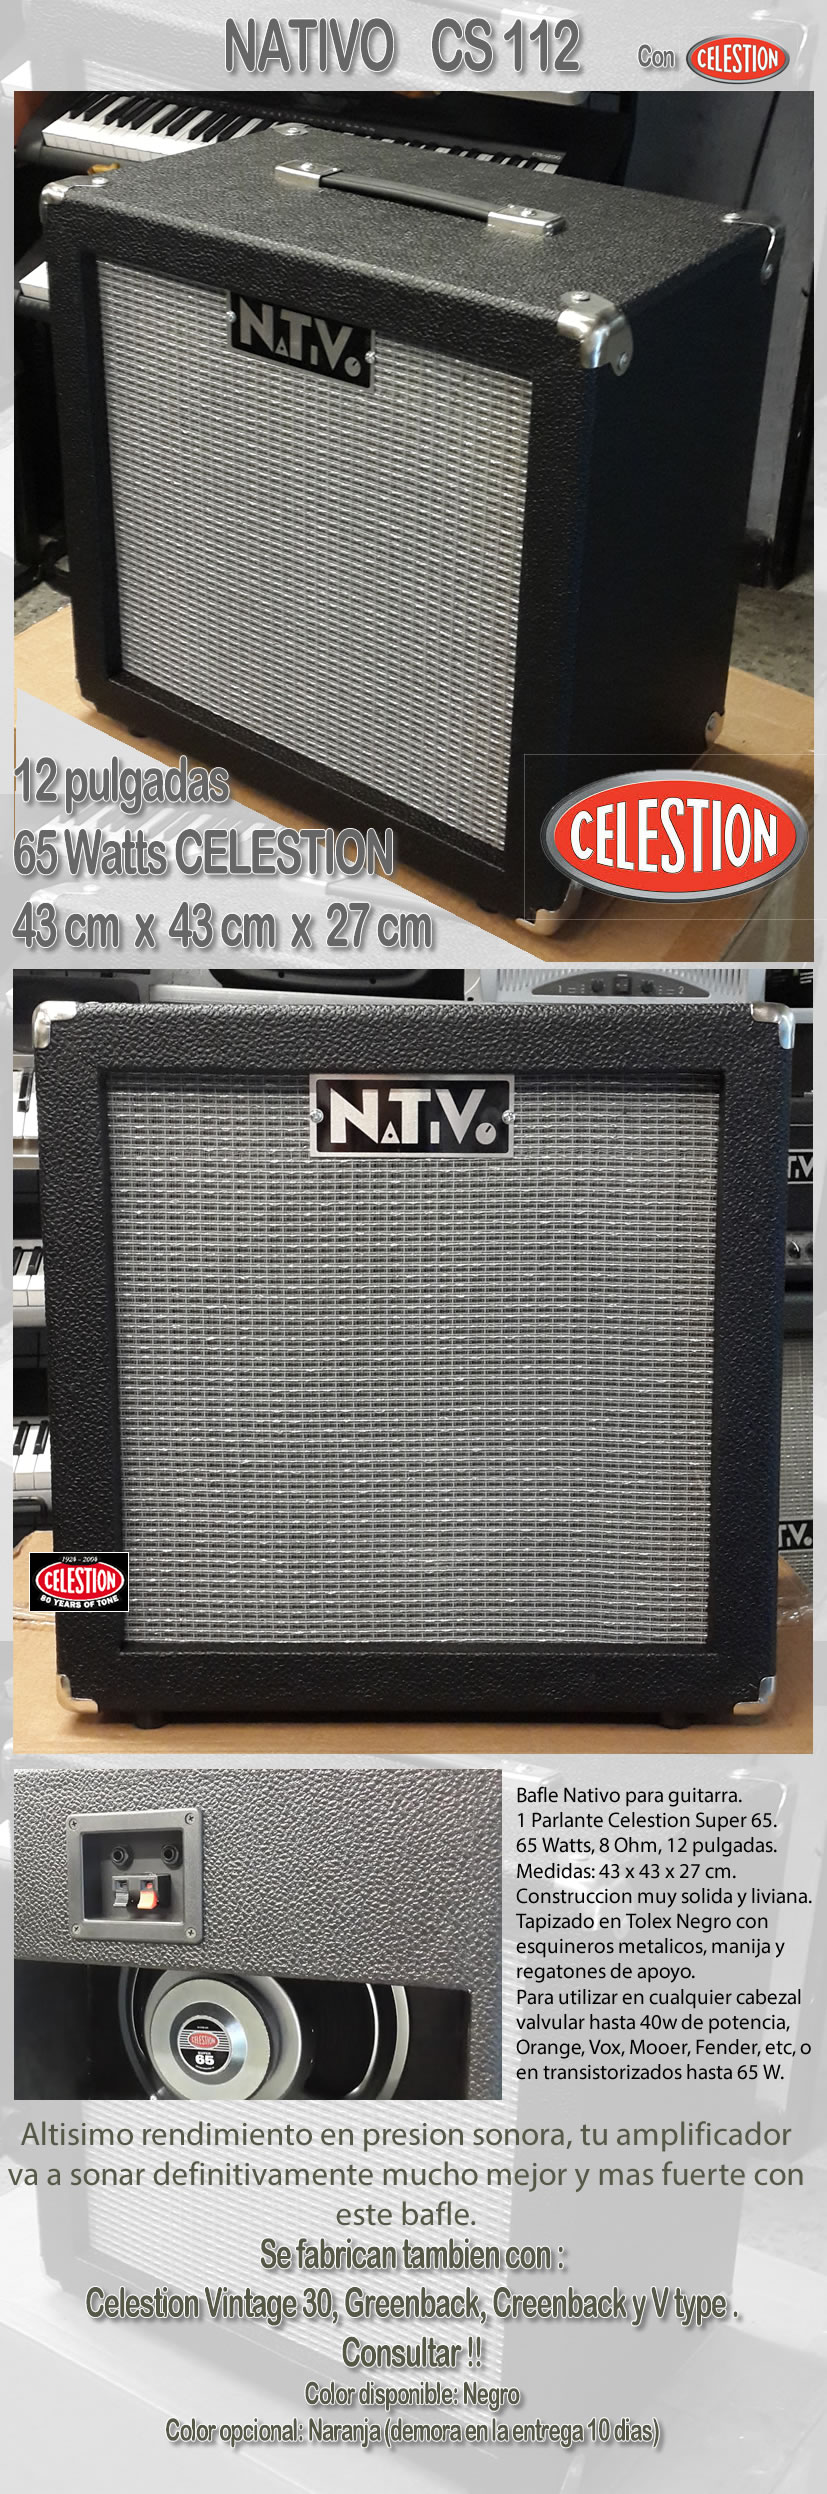 bafles y amplificadores Nativo, Marshall, Vox, Orange